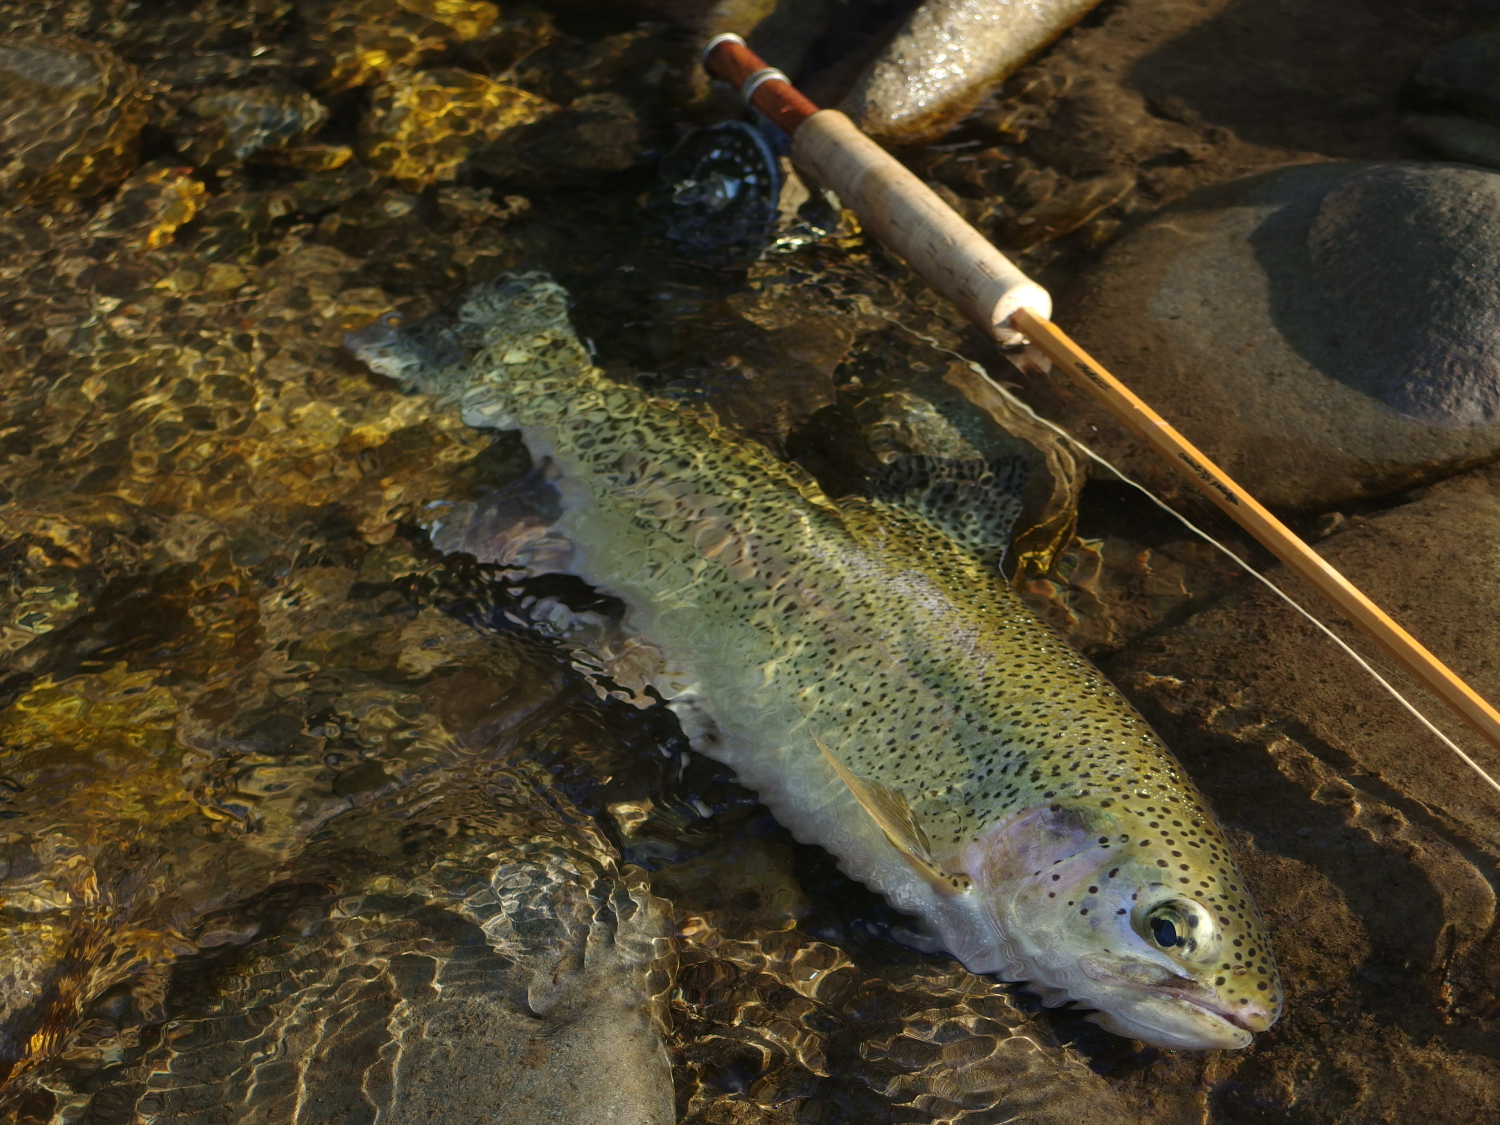 05:12pm Northern Hokkaido, Japan / Water temperature: 15.5℃ / Hatch: caddis/ Fly: CDC caddis #16